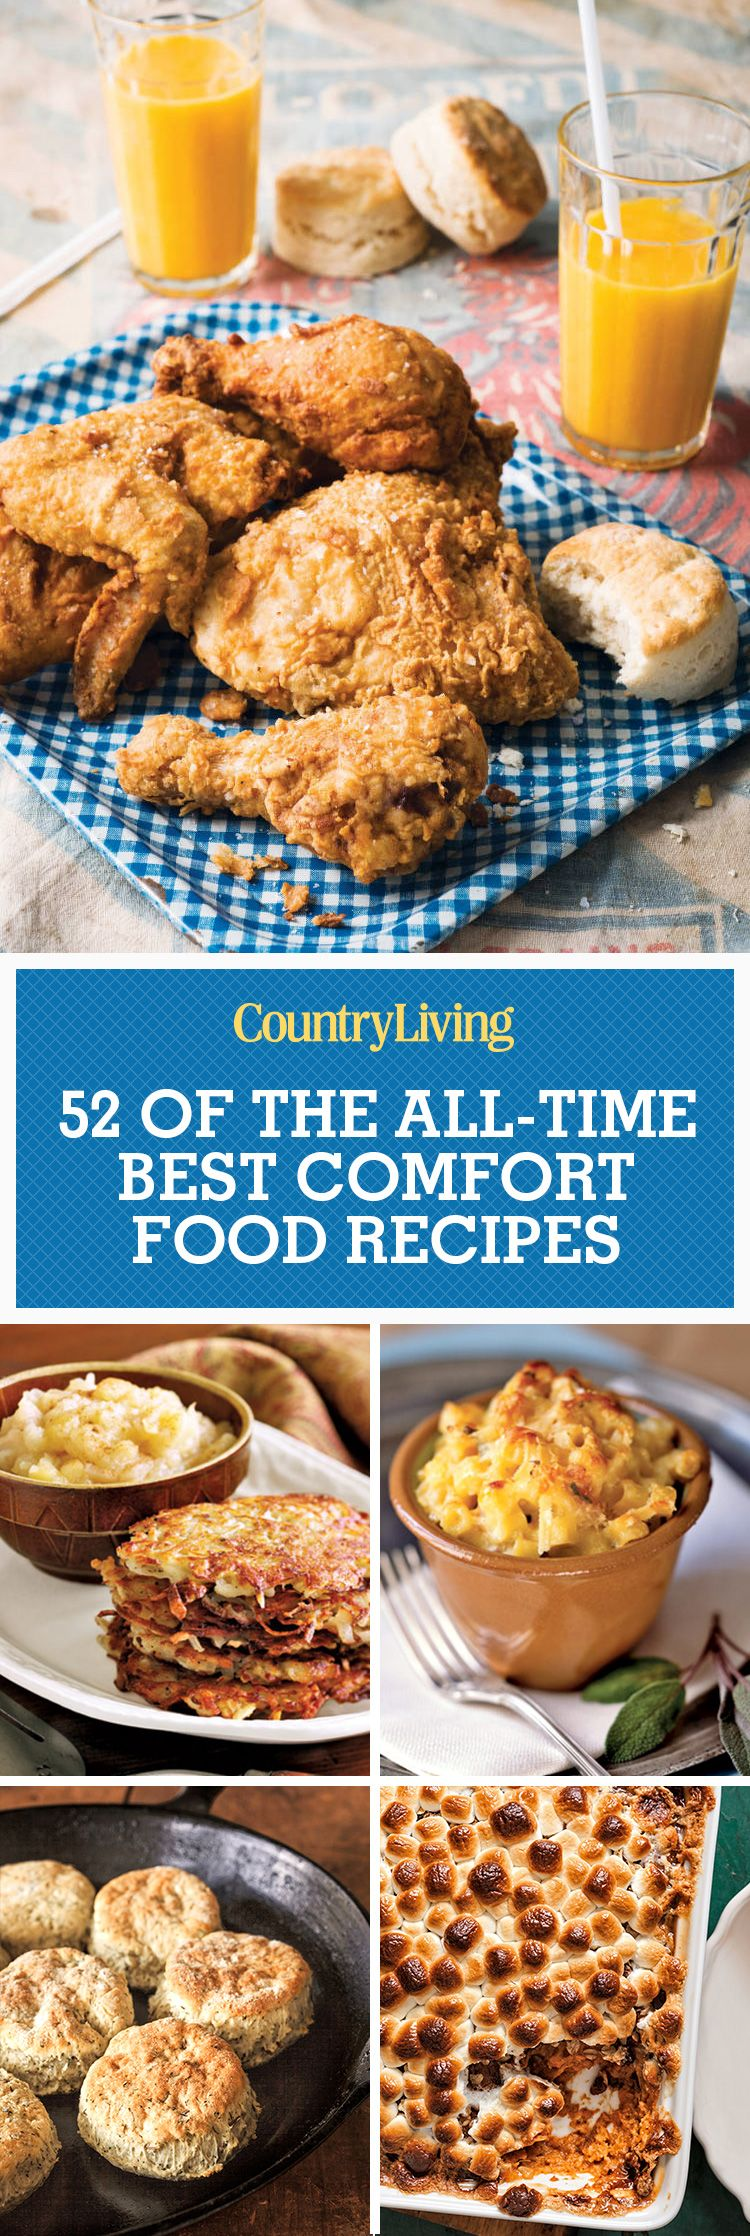 55 easy comfort food recipes best southern comfort food ideas forumfinder Images